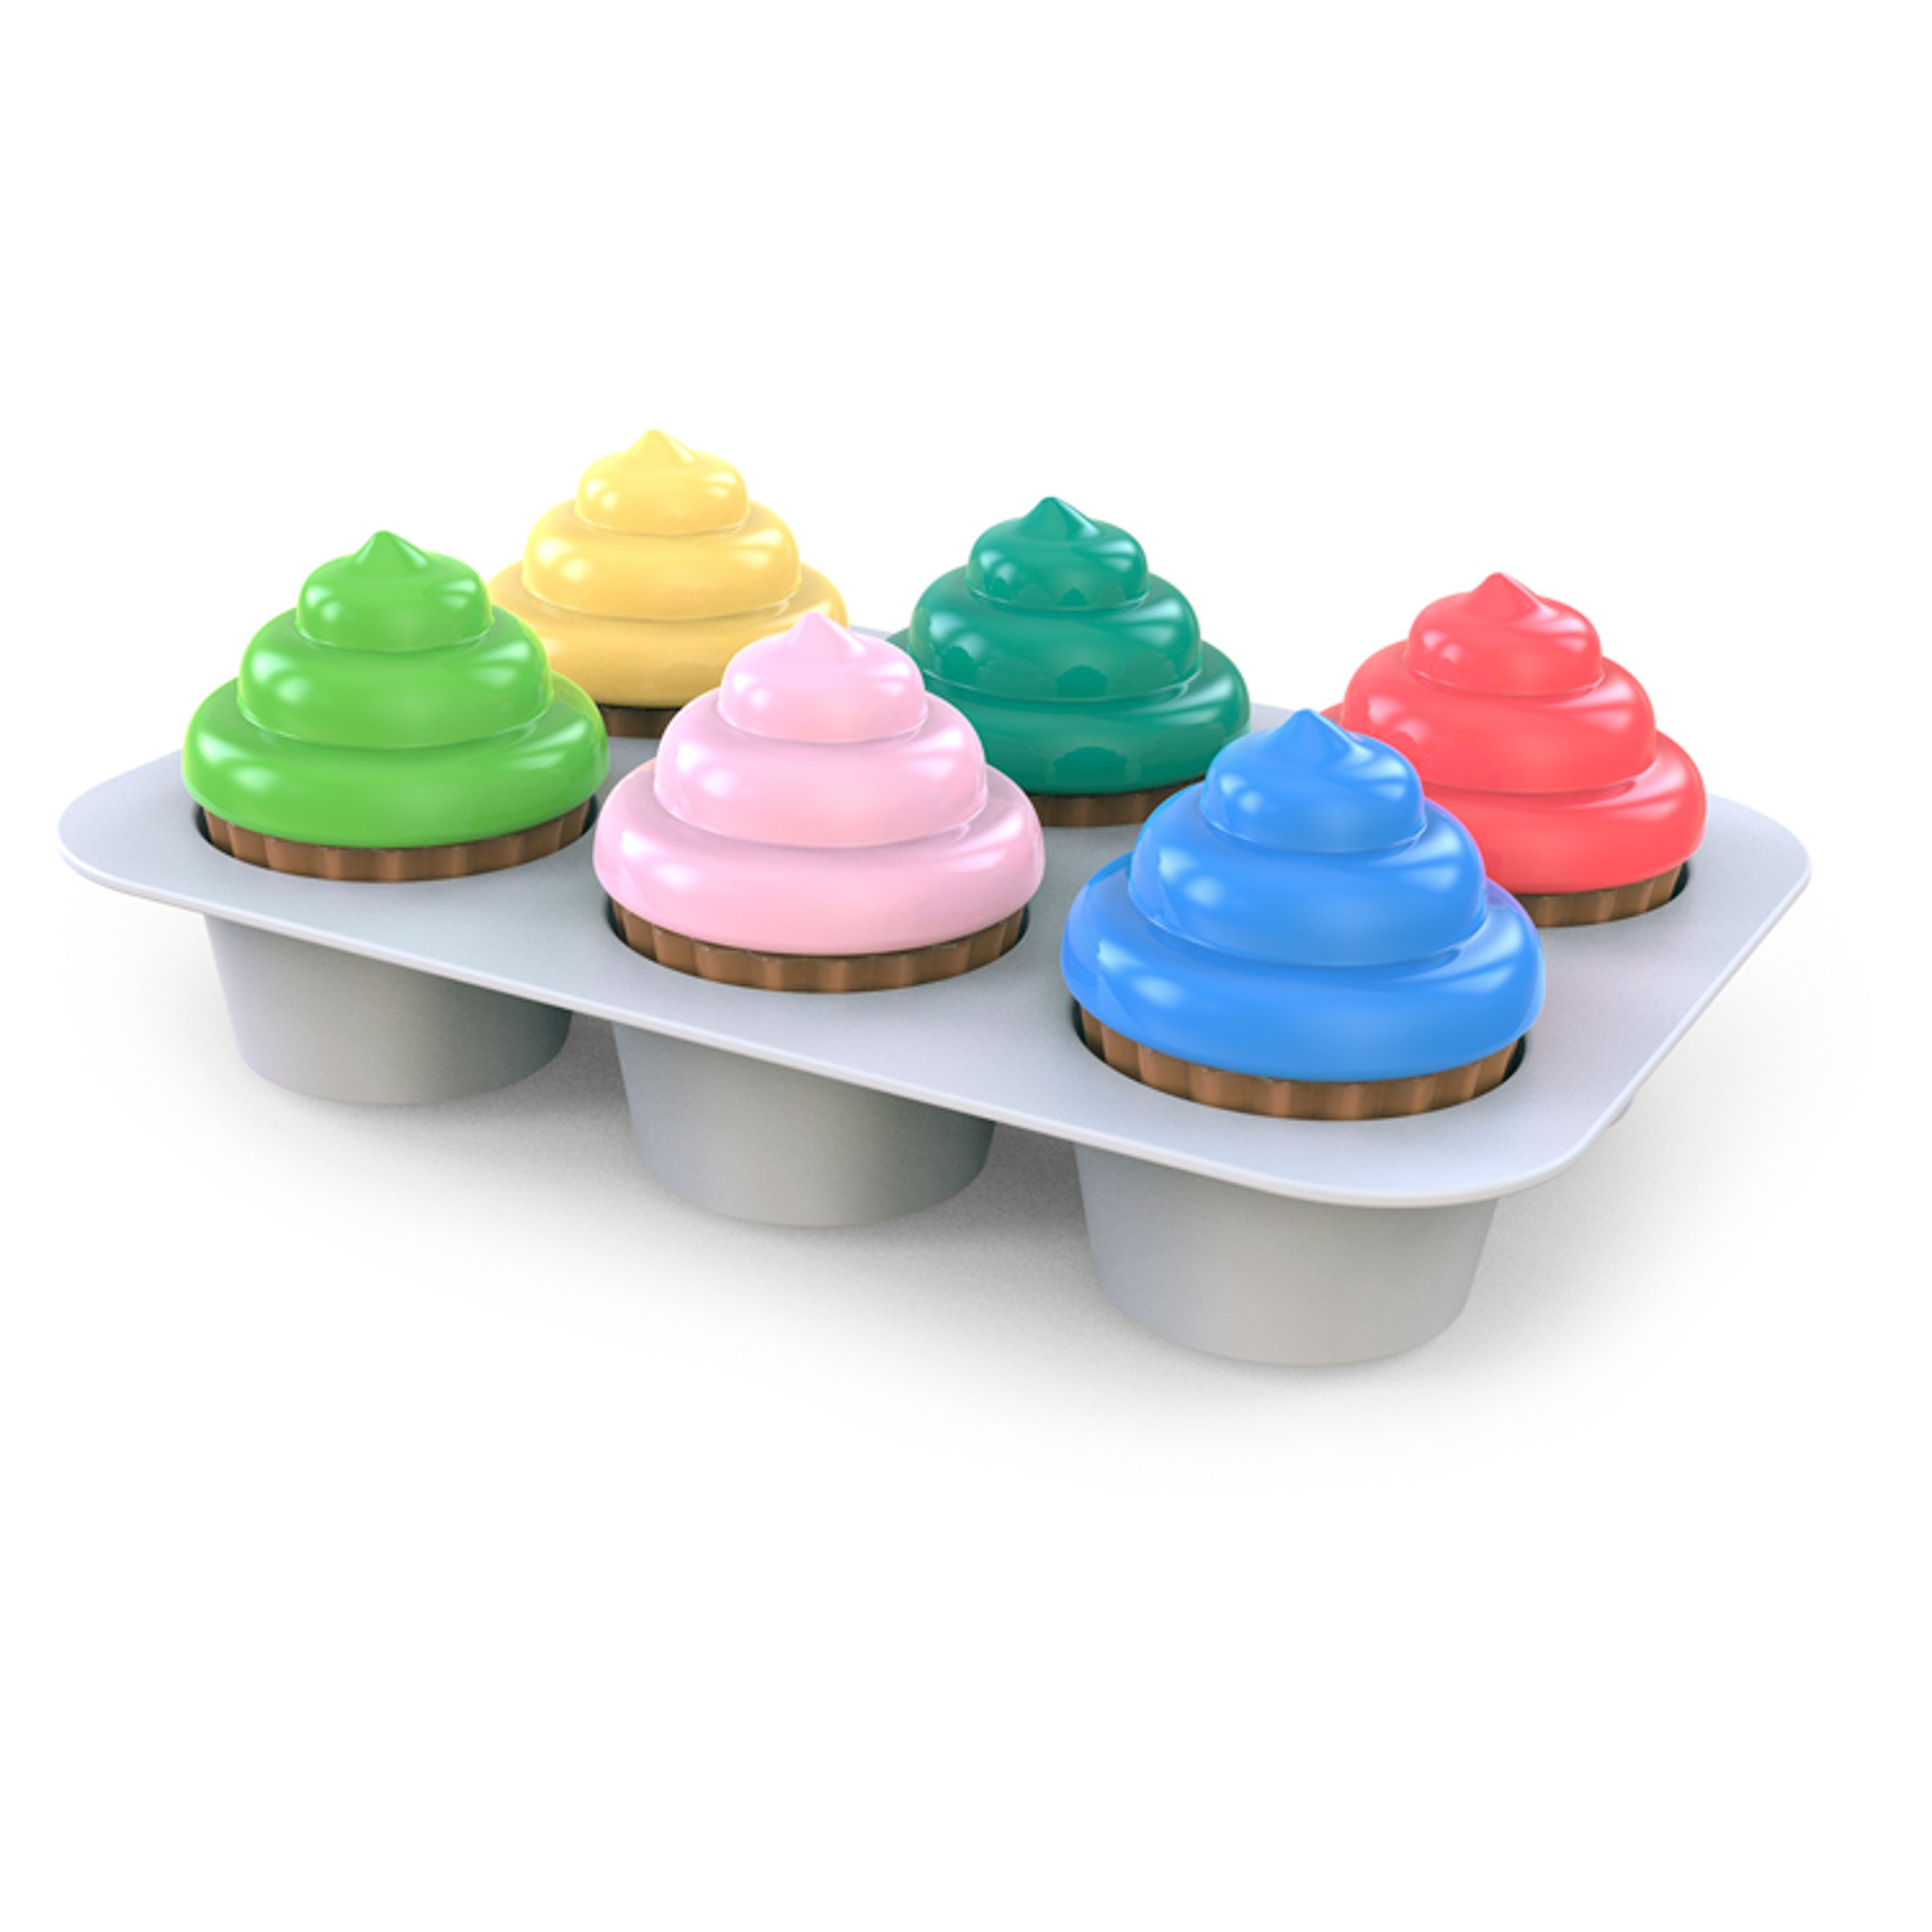 Bright Starts Cupcakes Activity Toy